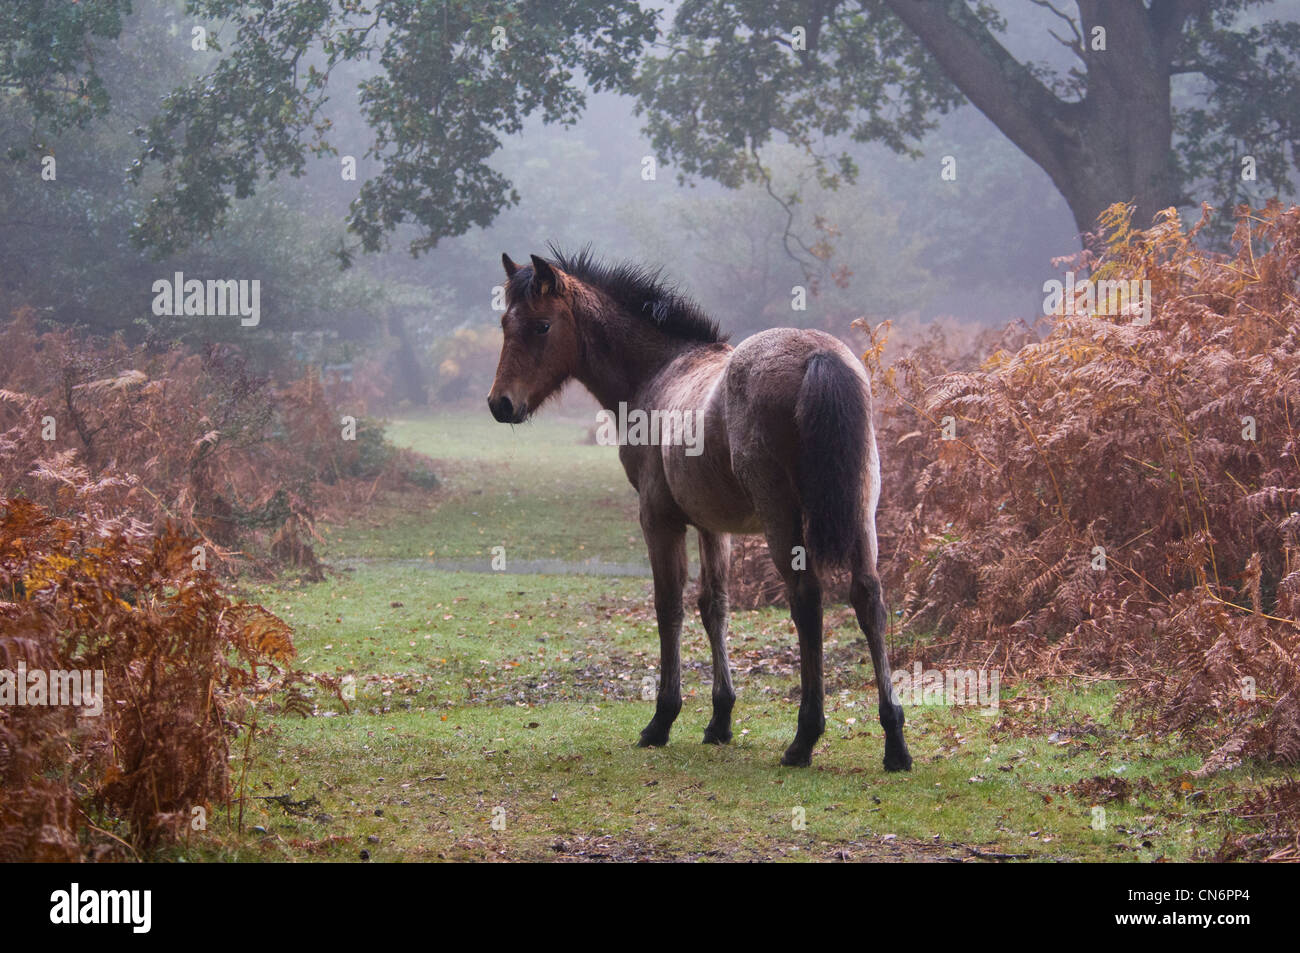 New Forest Pony (Equus caballus) in early morning mist and surrounded by autumn bracken, in the New Forest, Hampshire. - Stock Image